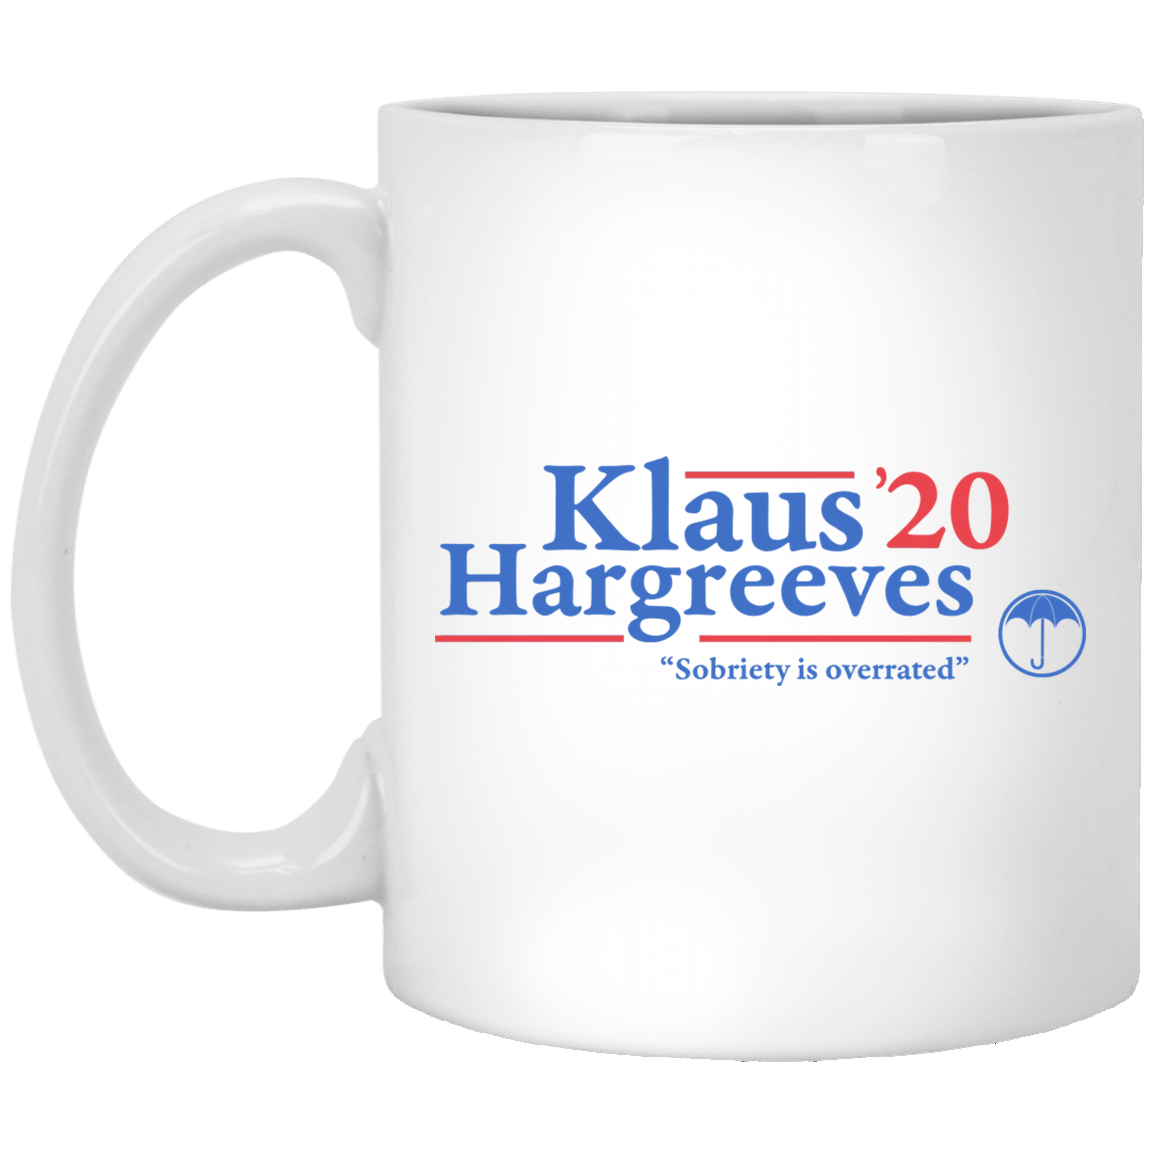 Klaus Hargreeves 2020 Sobriety Is Overrated Mug 1005-9786-88282901-47417 - Tee Ript